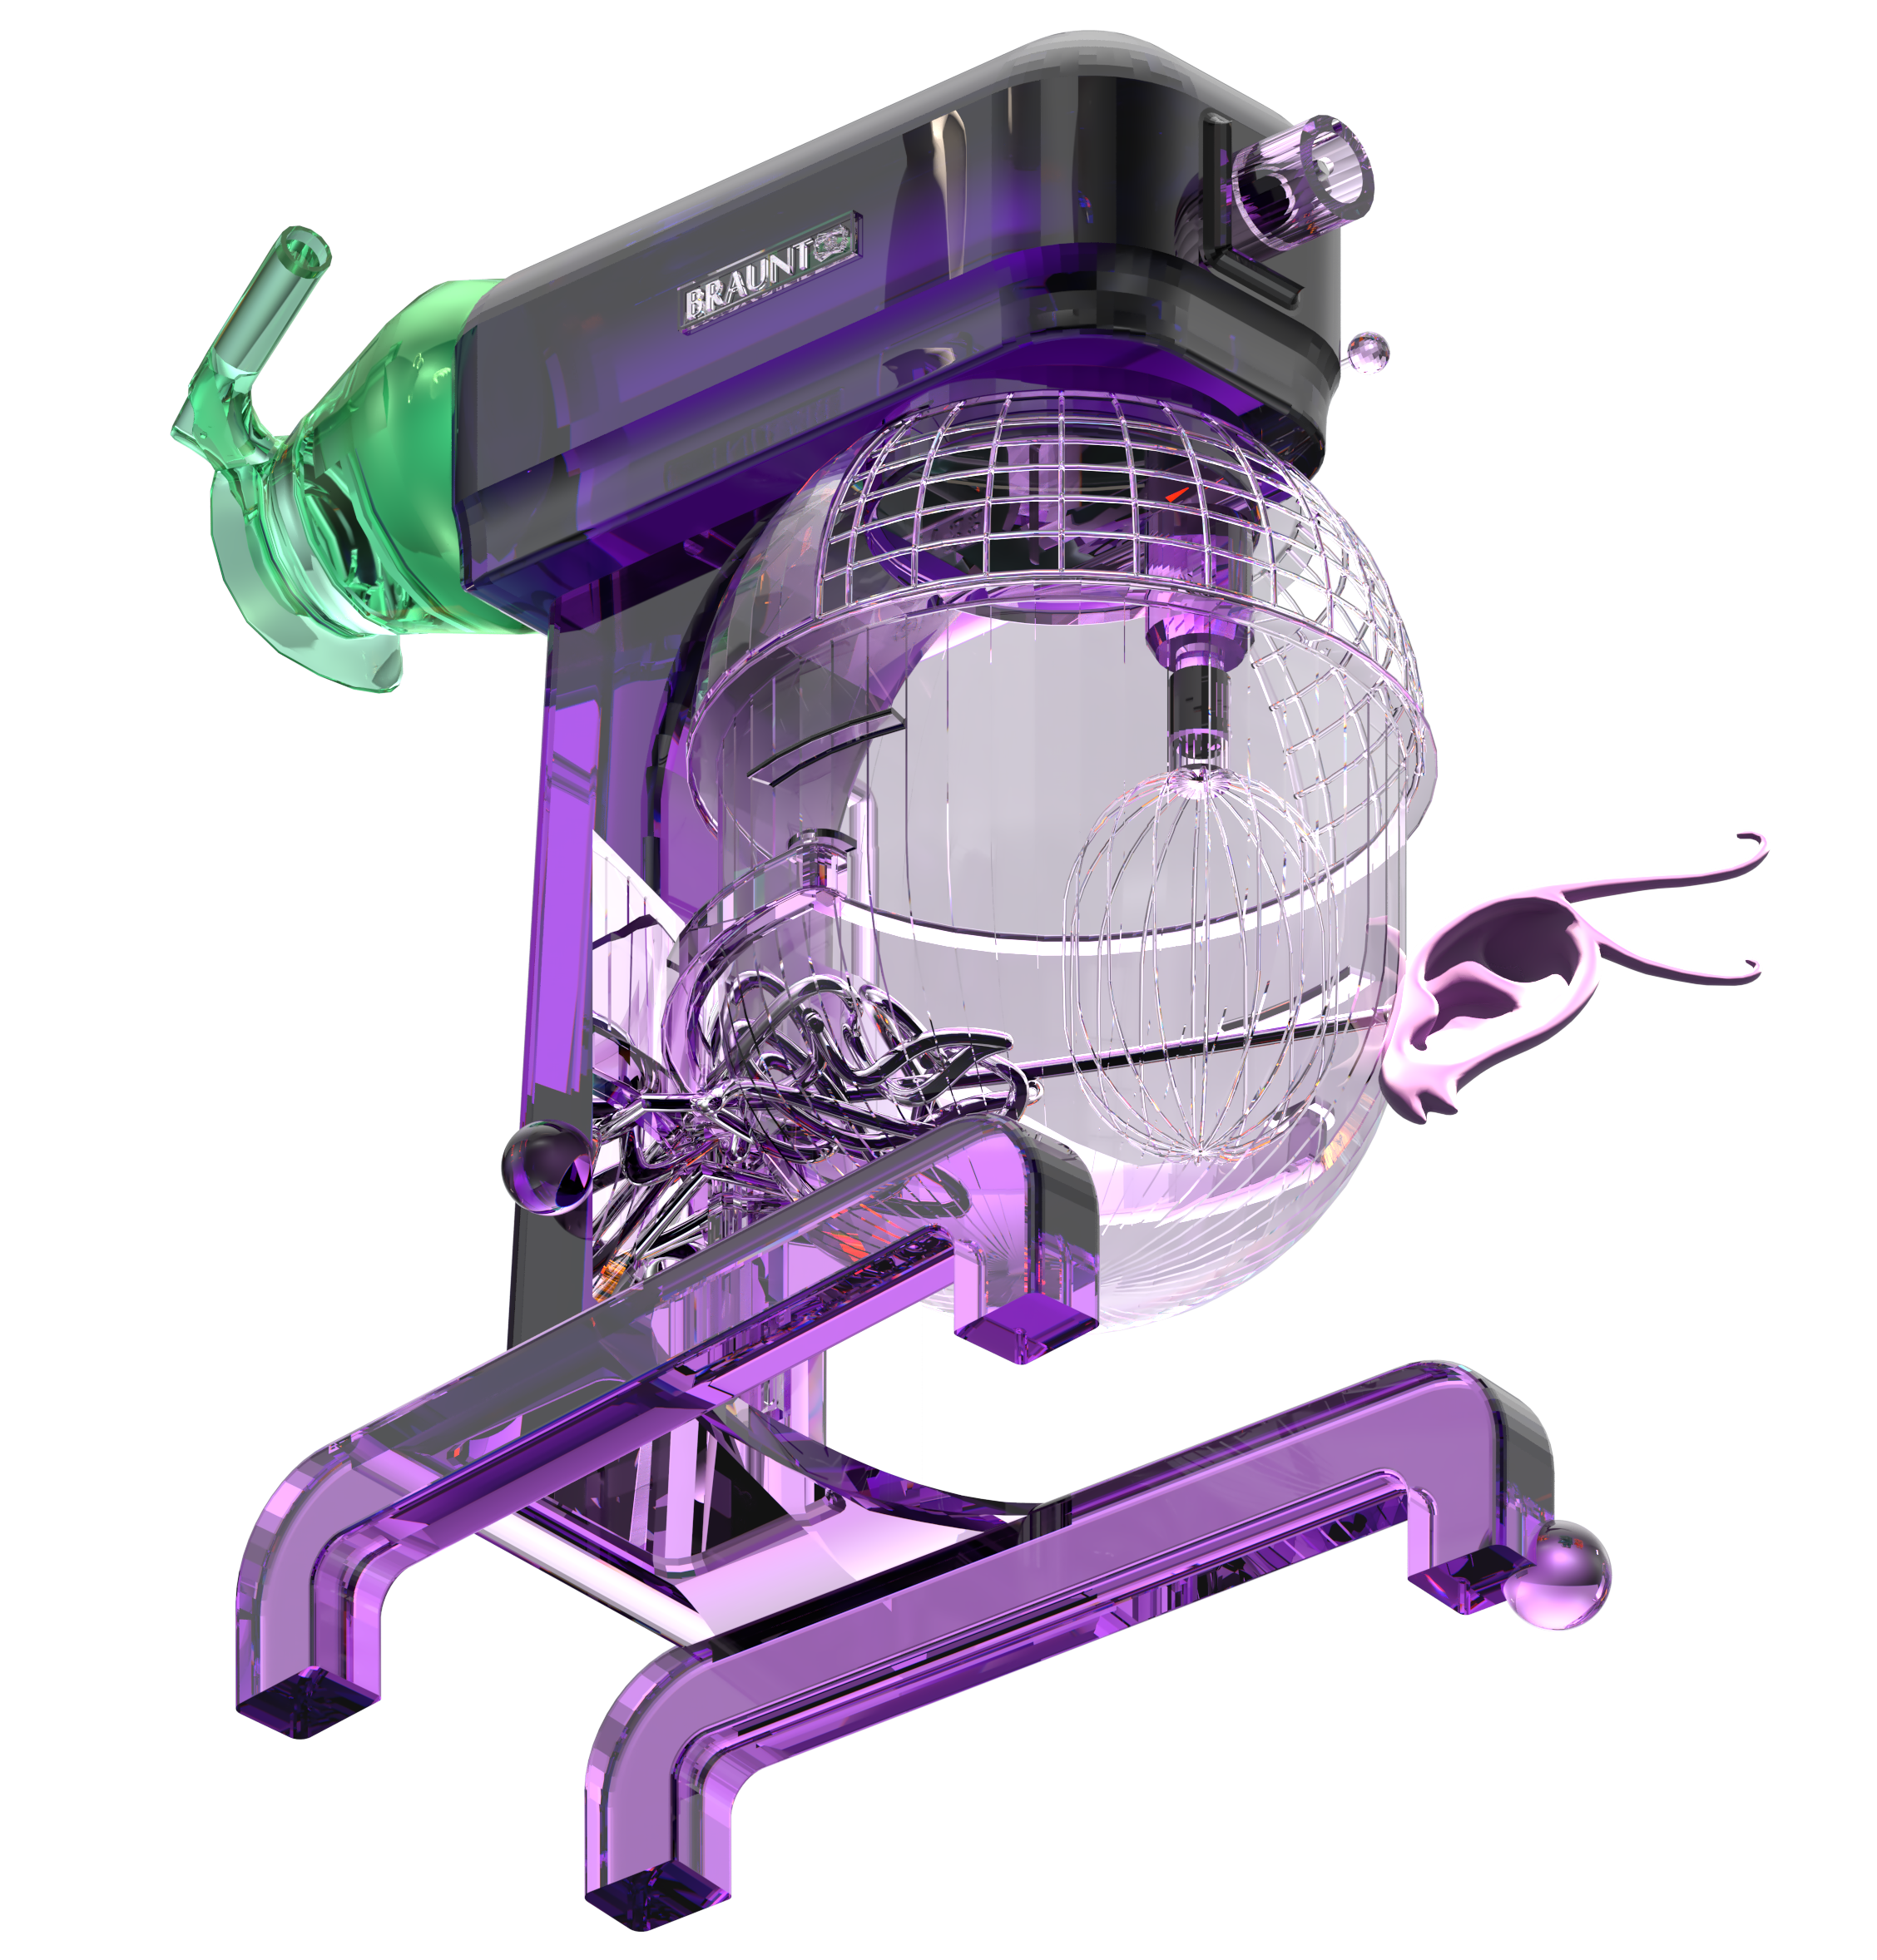 a purple machine that looks like a combination of a mircoscope, a stand-mixer and other scientific and kitchen related tools